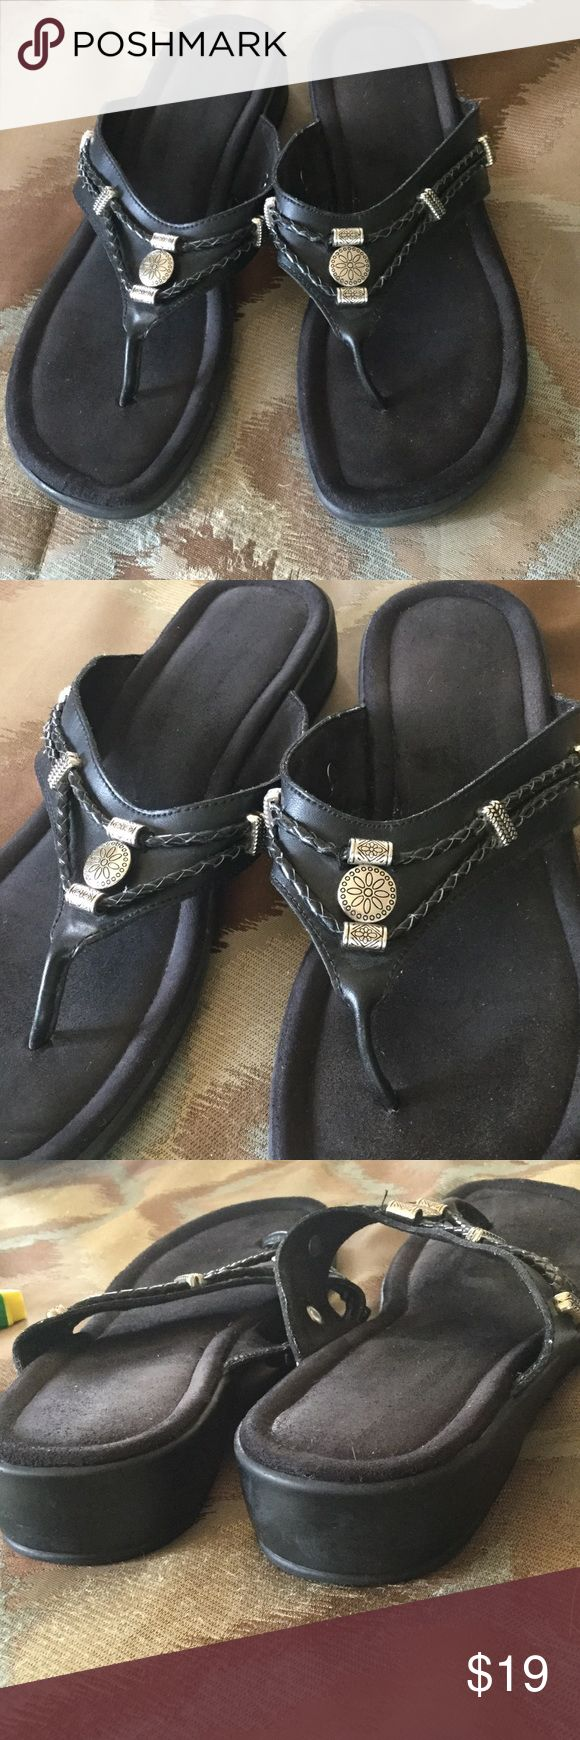 MINNETONKA SANDALS - BLACK Great sandals for your walking feet.  Black leather.  Size and brand name worn off in sole.  Size 8.5.  Definitely used condition but still very functional.  Ask for additional pics if needed.  FB0814025 Minnetonka Shoes Sandals